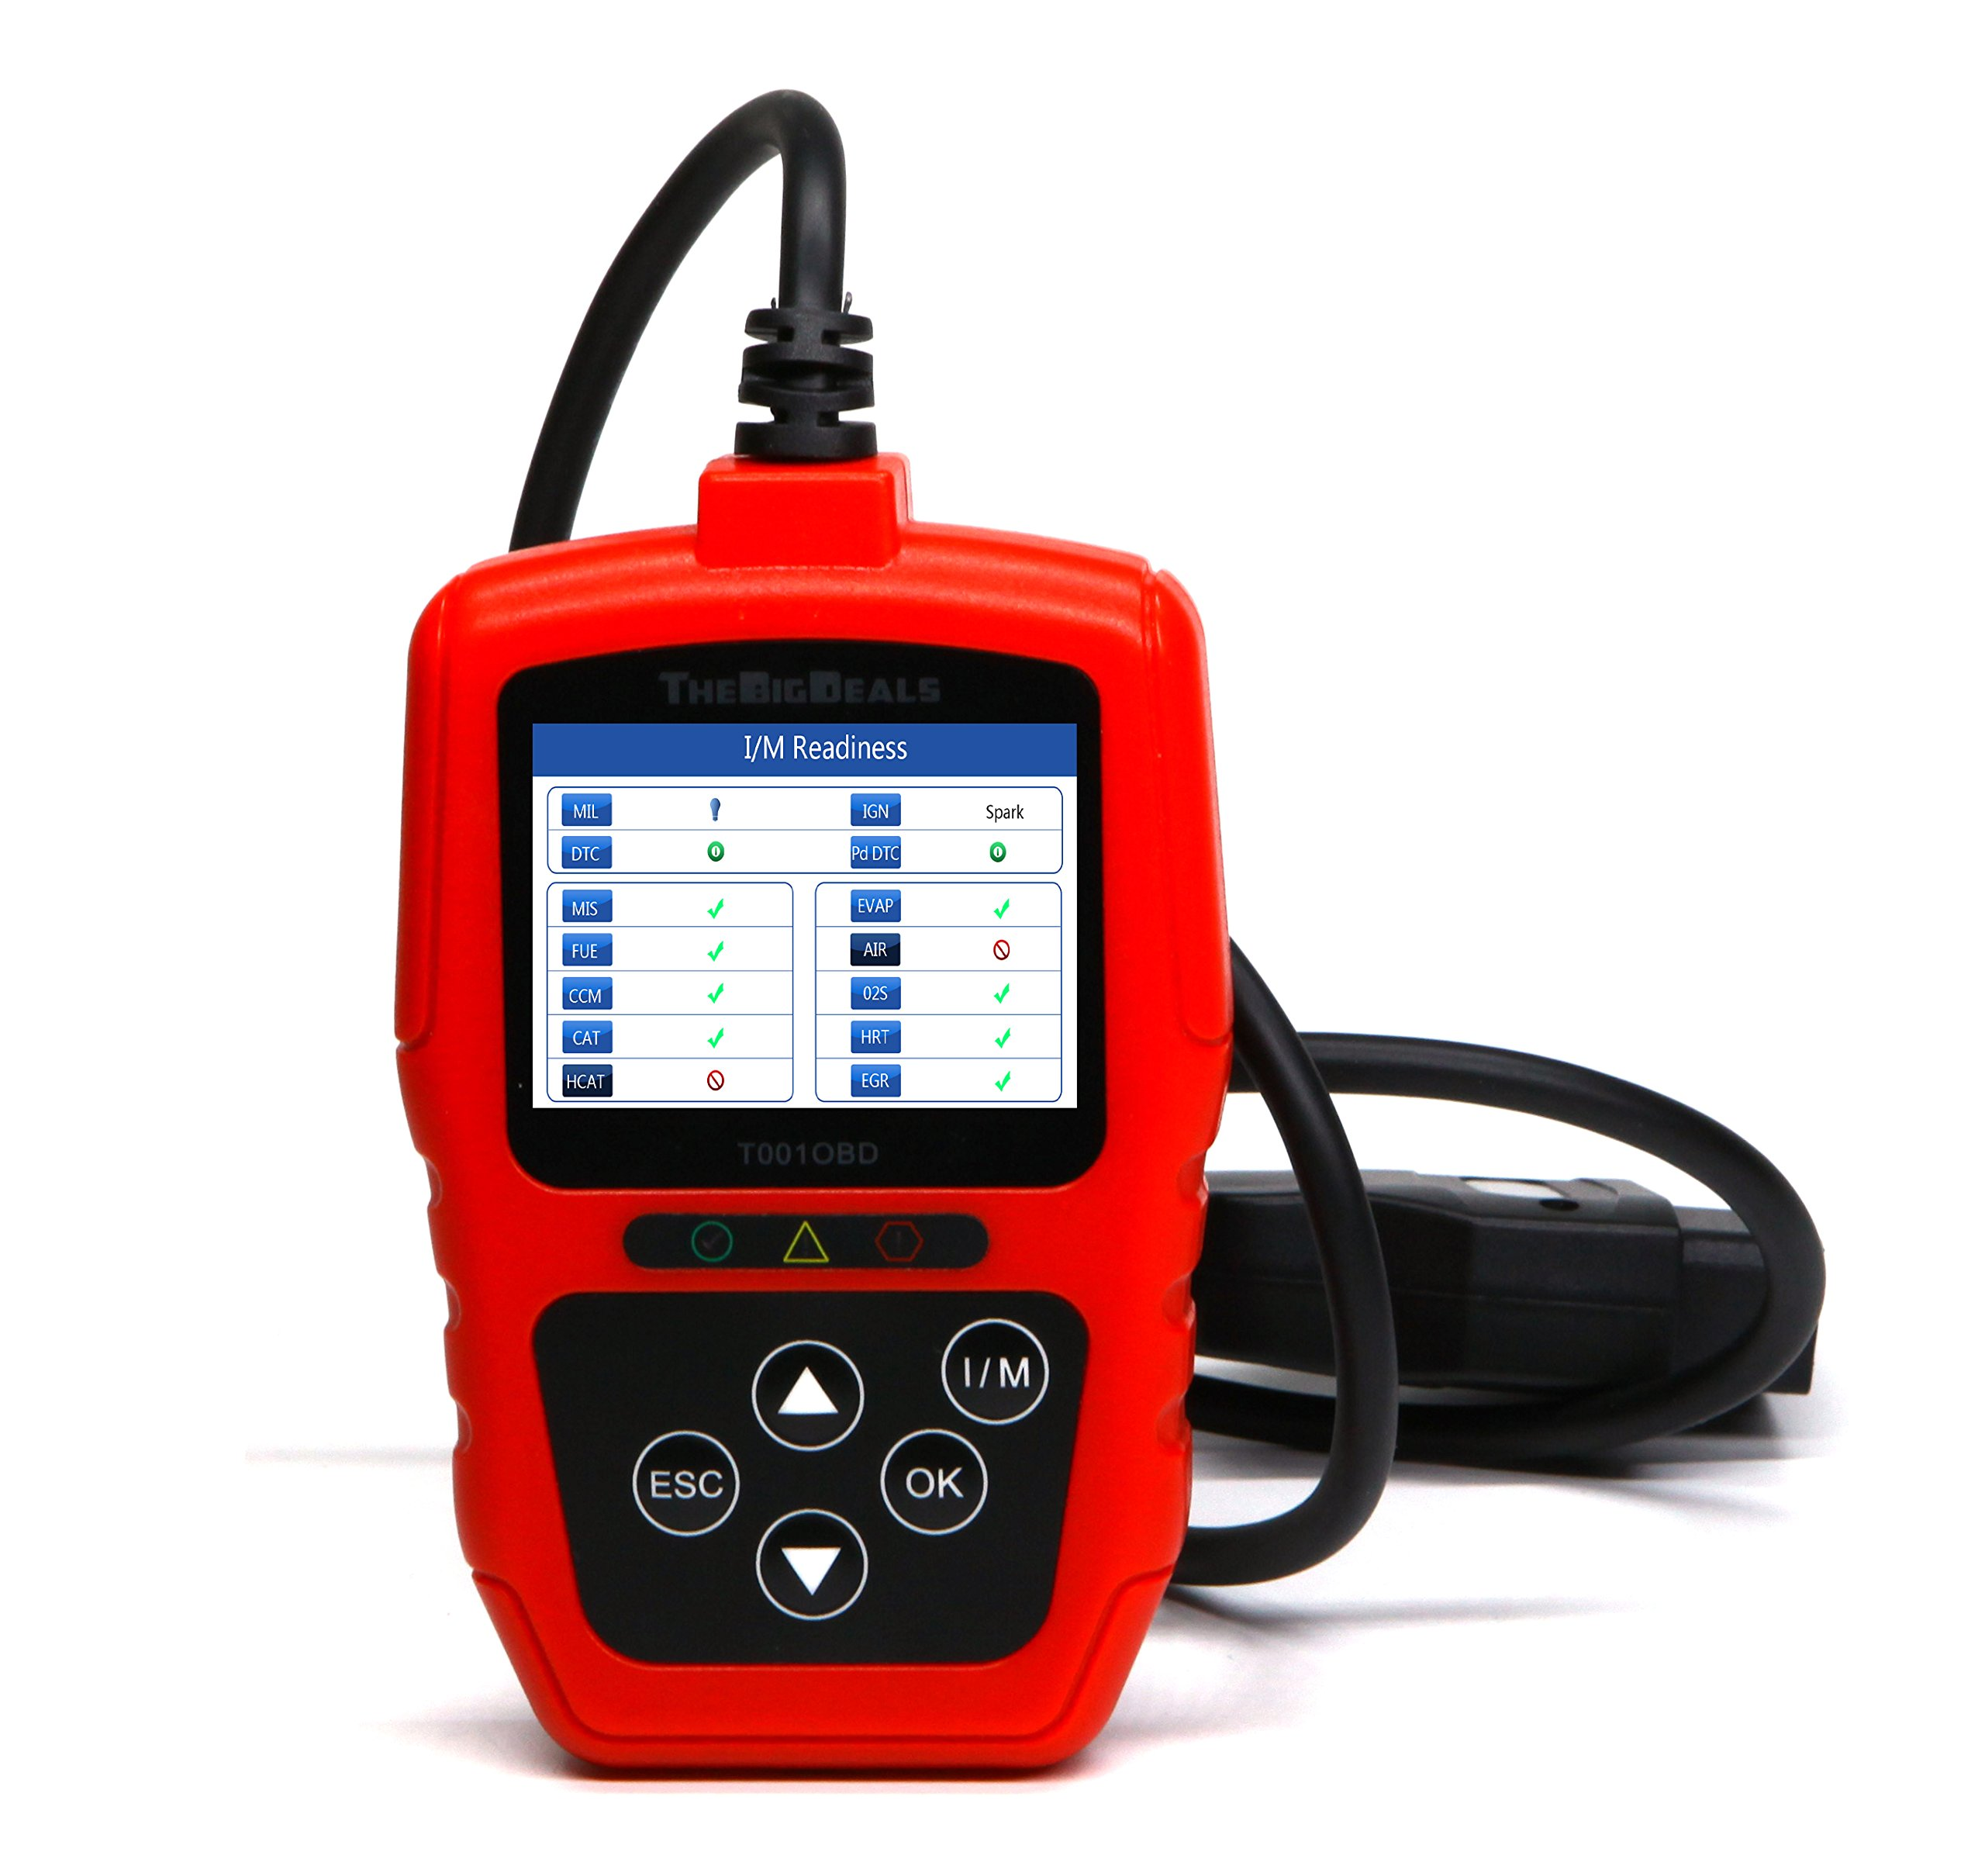 THEBIGDEALS T001OBD OBD II Scanner Car Engine Fault Code Reader CAN Diagnostic Scan Tool OBD2 scanner